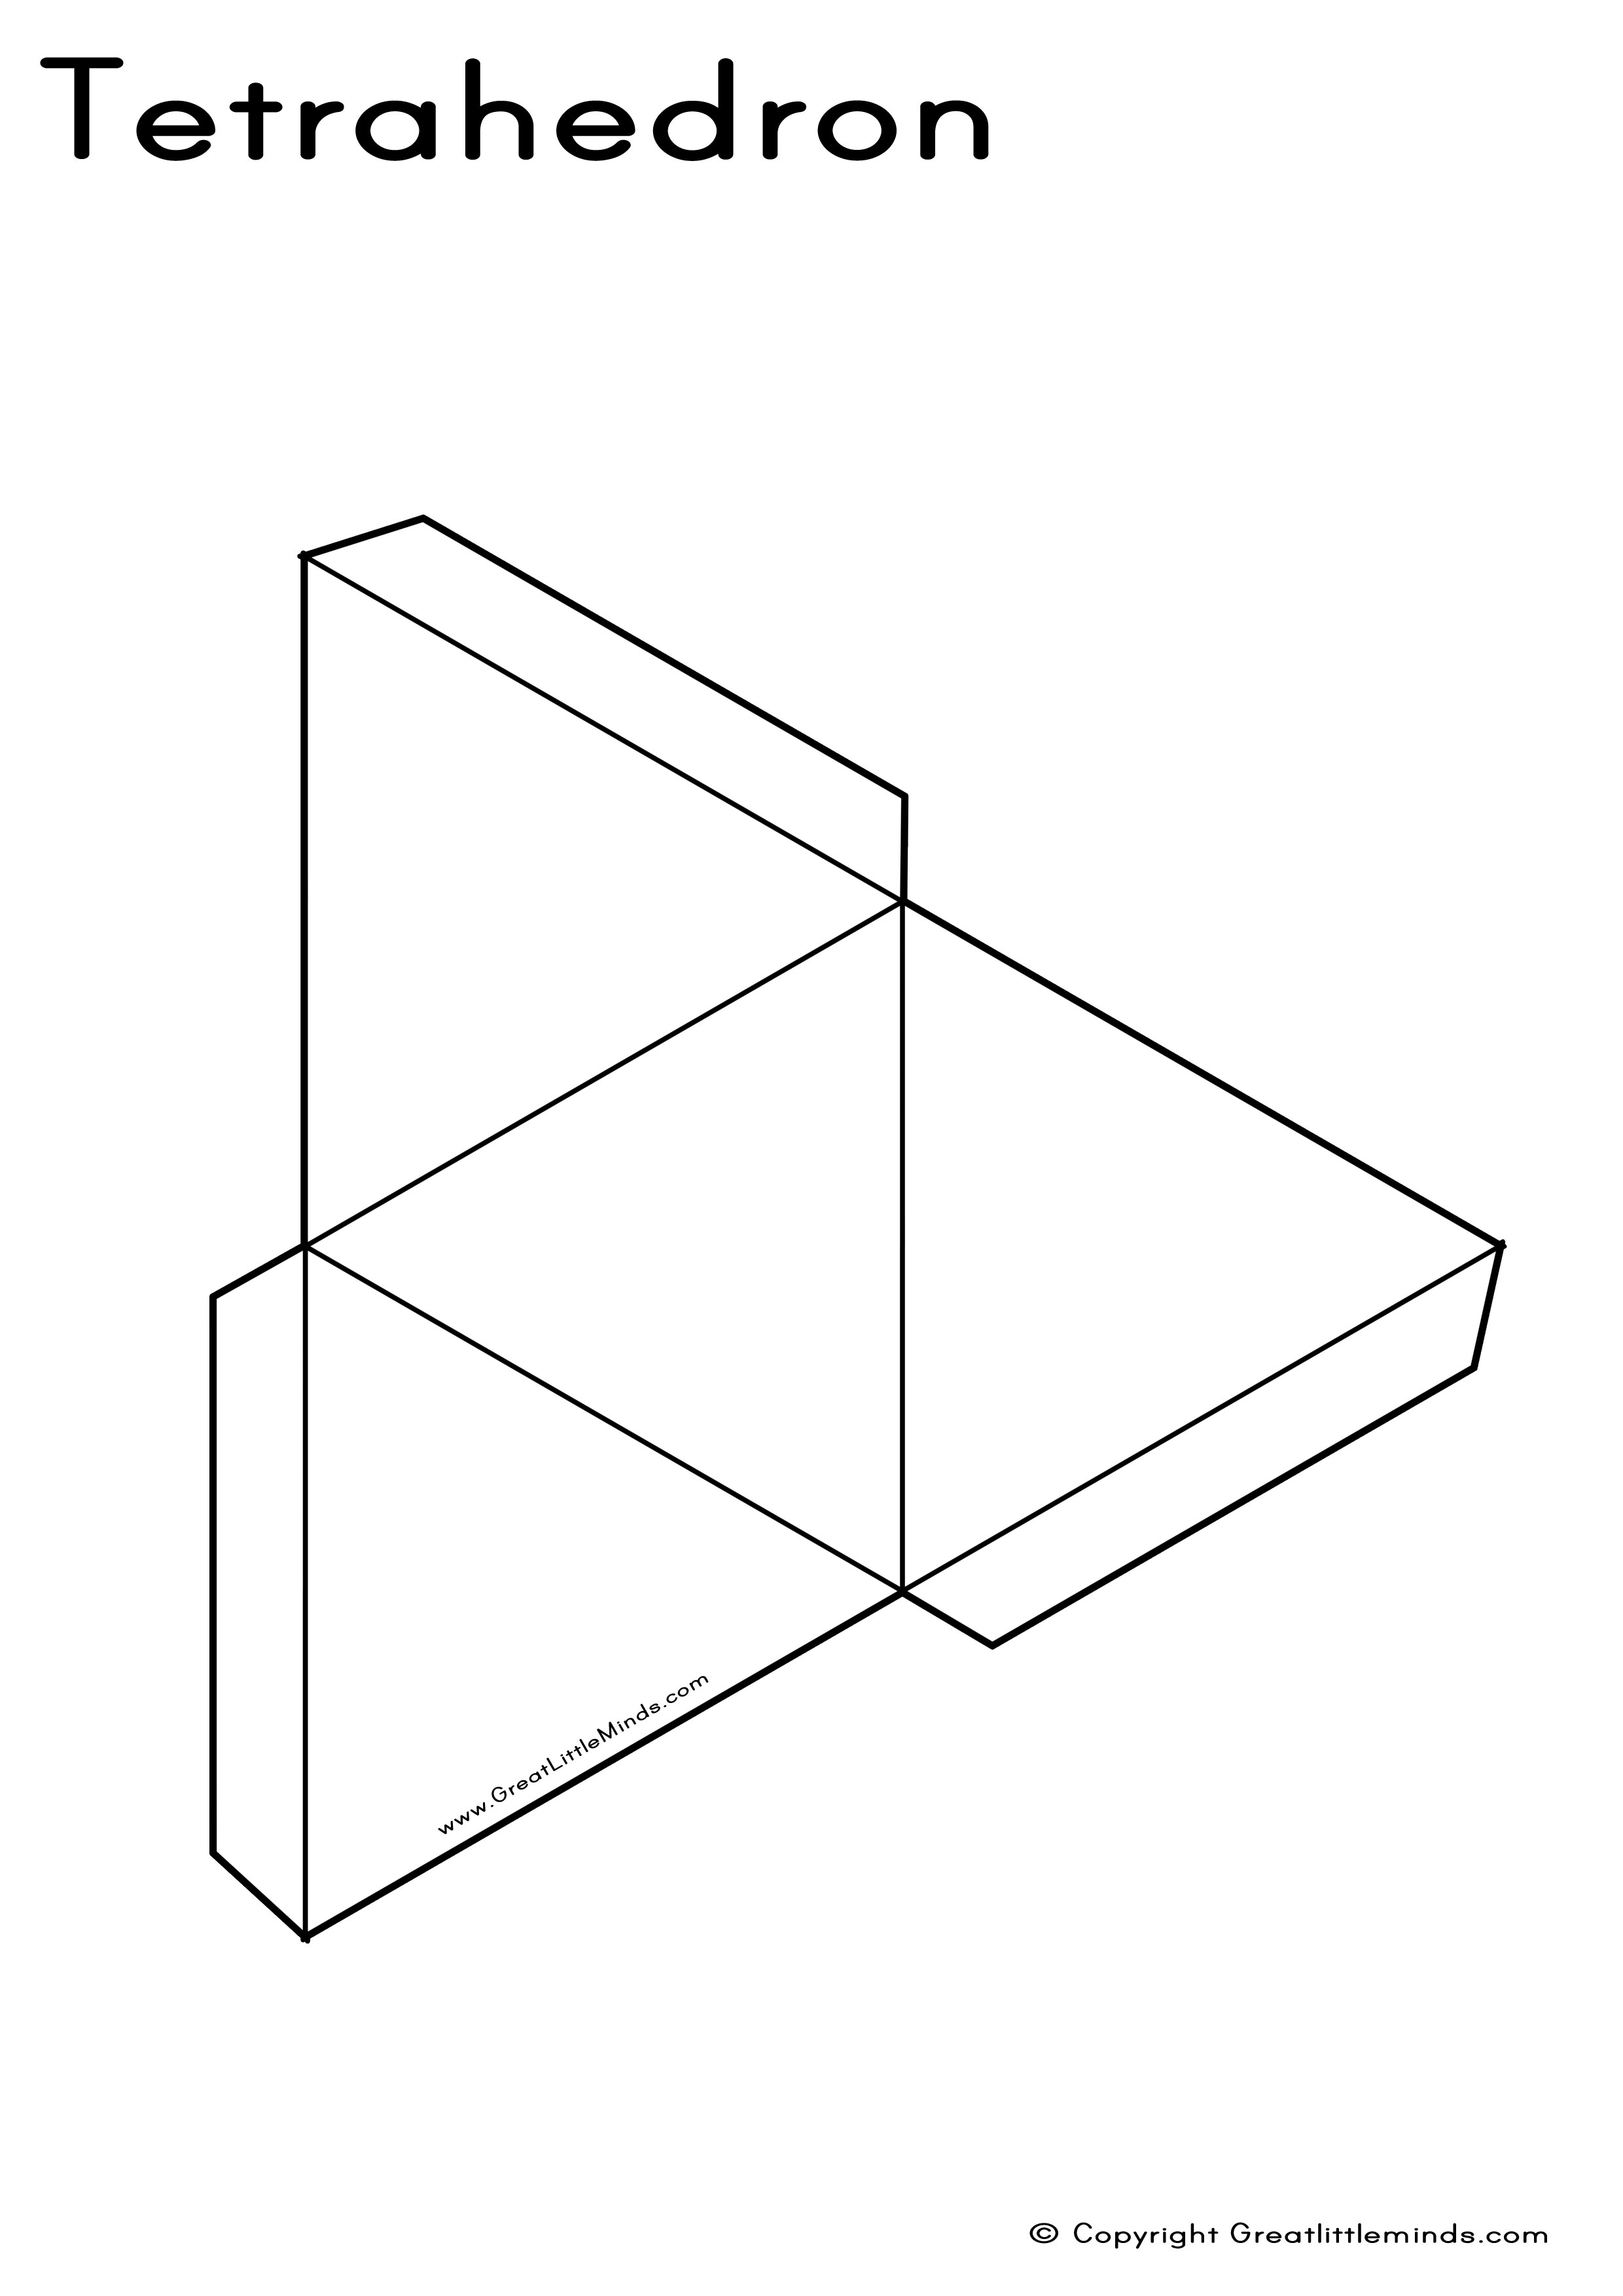 Worksheets Geometric Nets Worksheets 3d nets tetrahedron or click here for